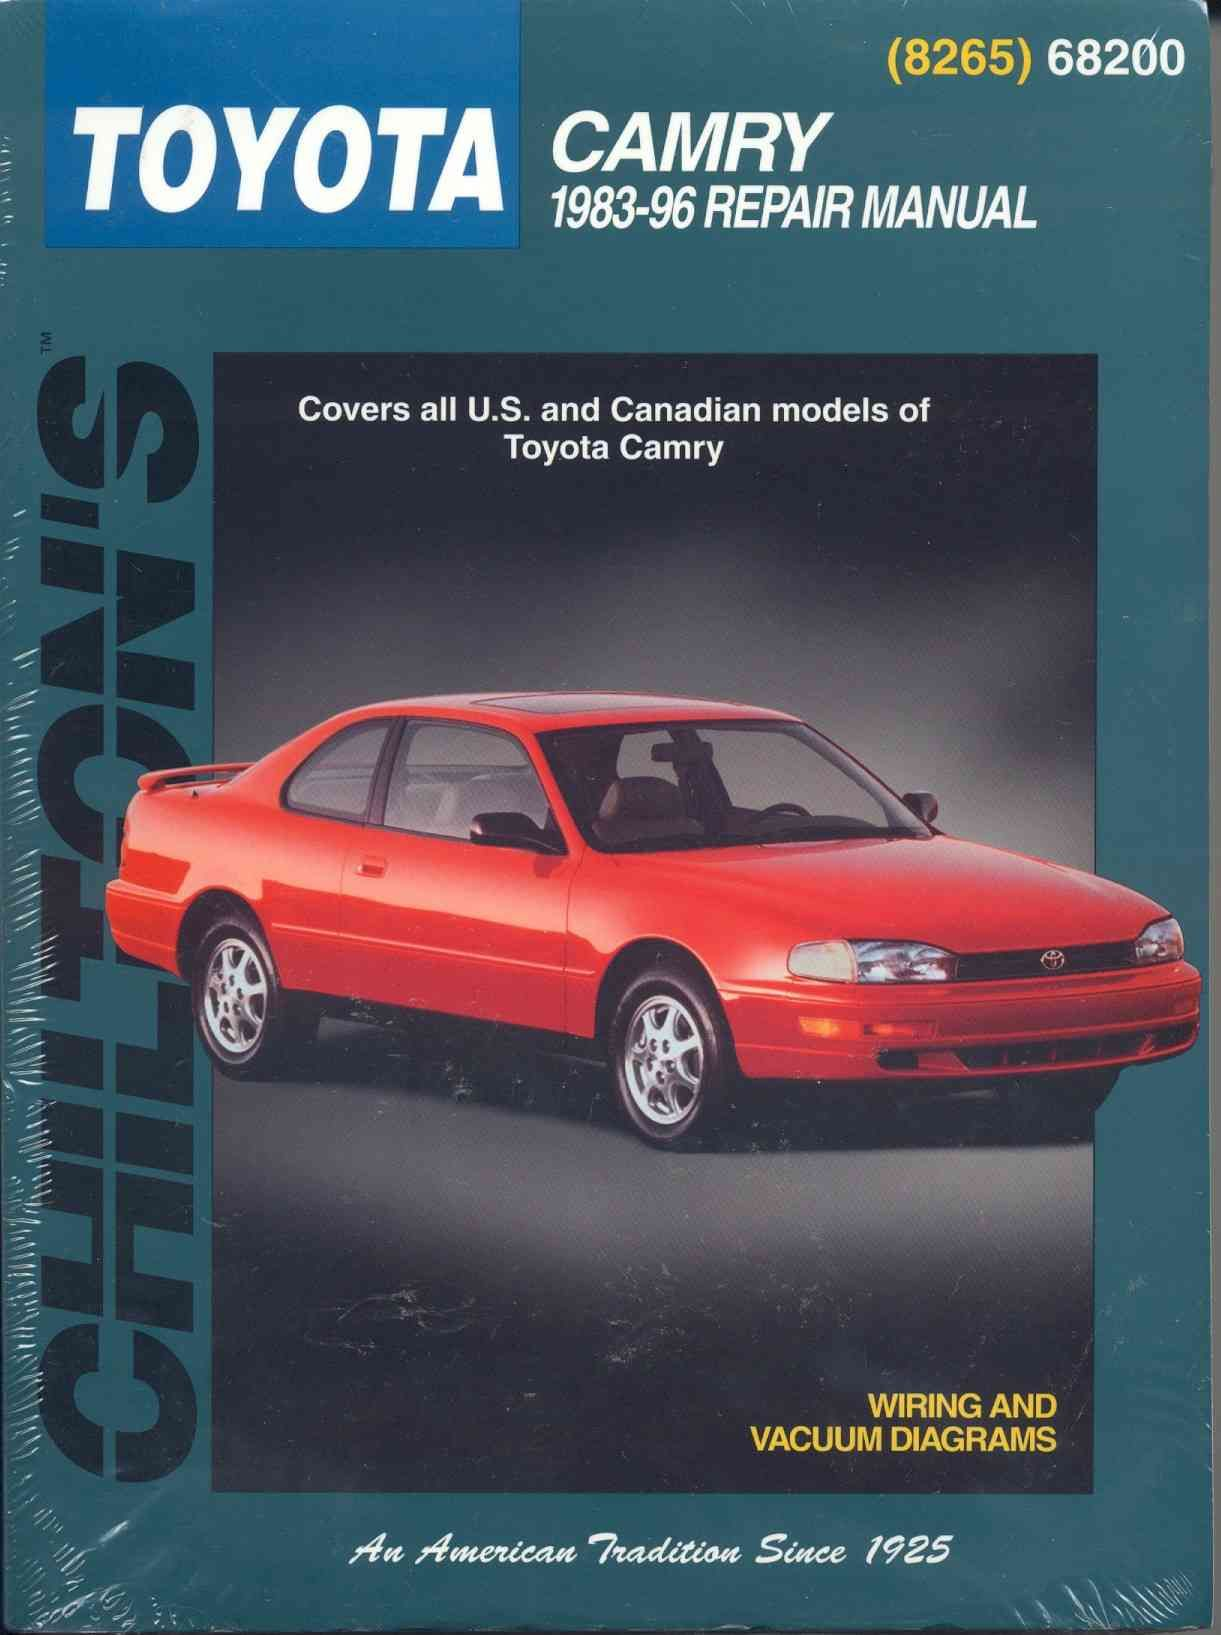 chilton s toyota camry 1983 96 repair manual toyota pinterest rh pinterest com 2010 Toyota Camry Manual chilton's toyota camry 1997-01 repair manual